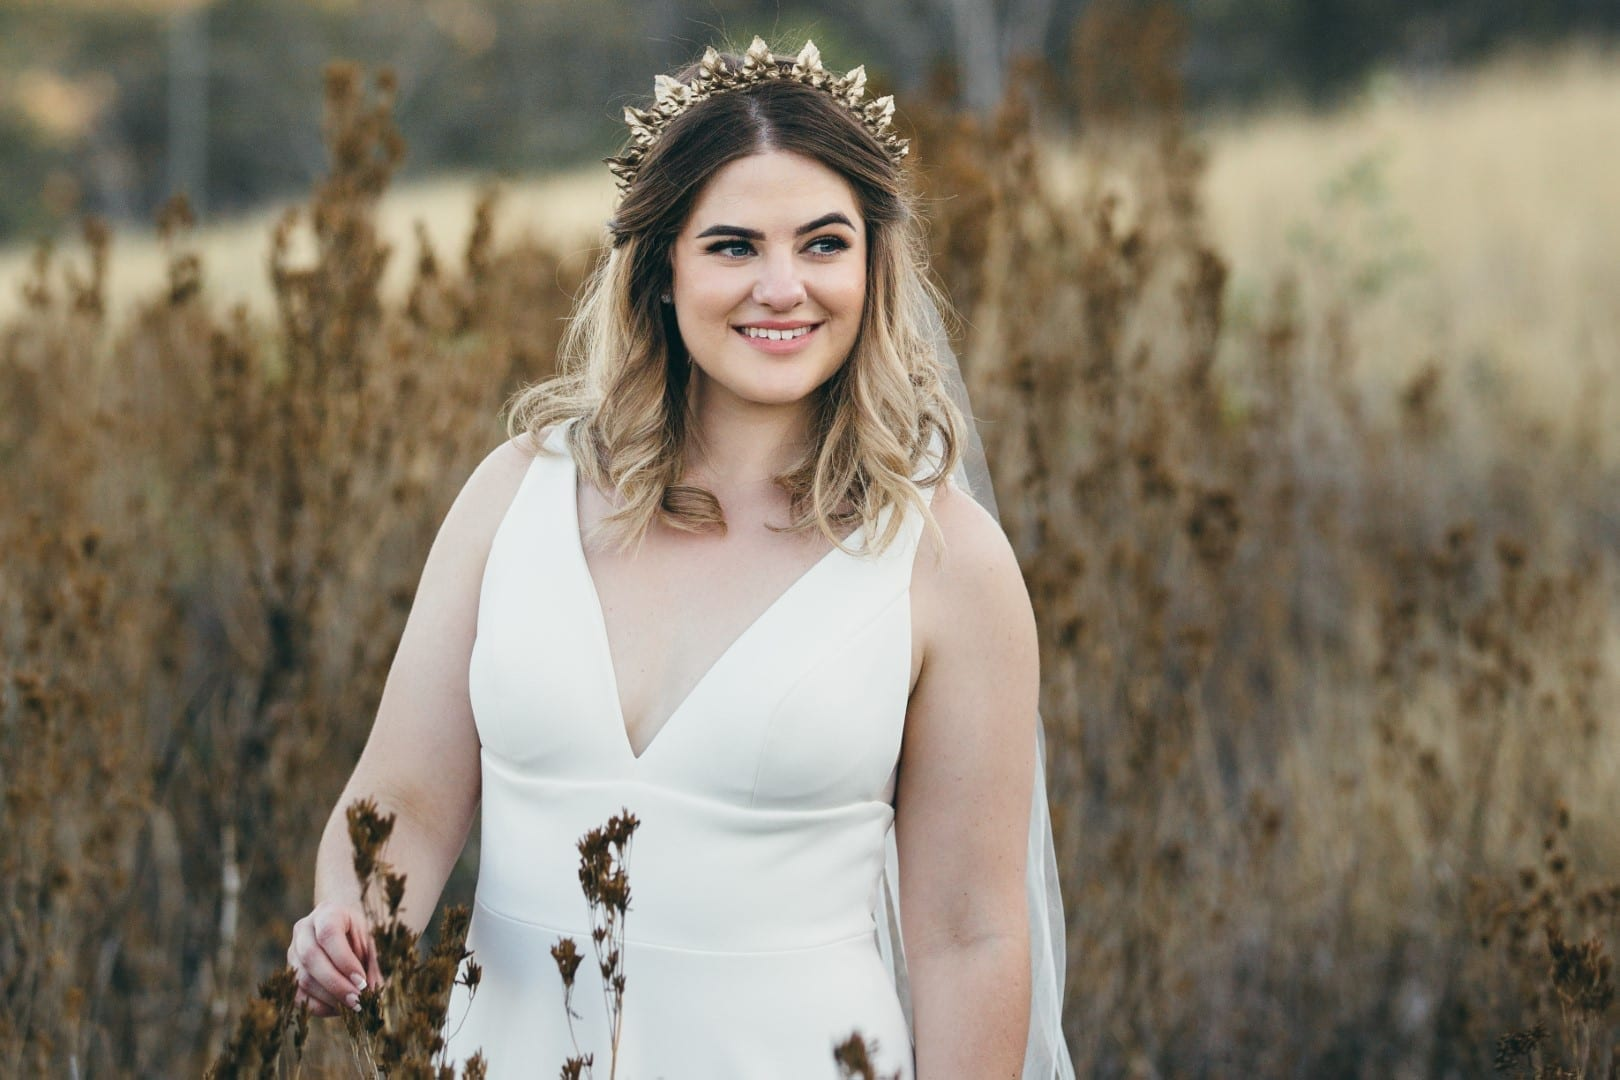 Jess wears Everly by Erin Clare Bridal